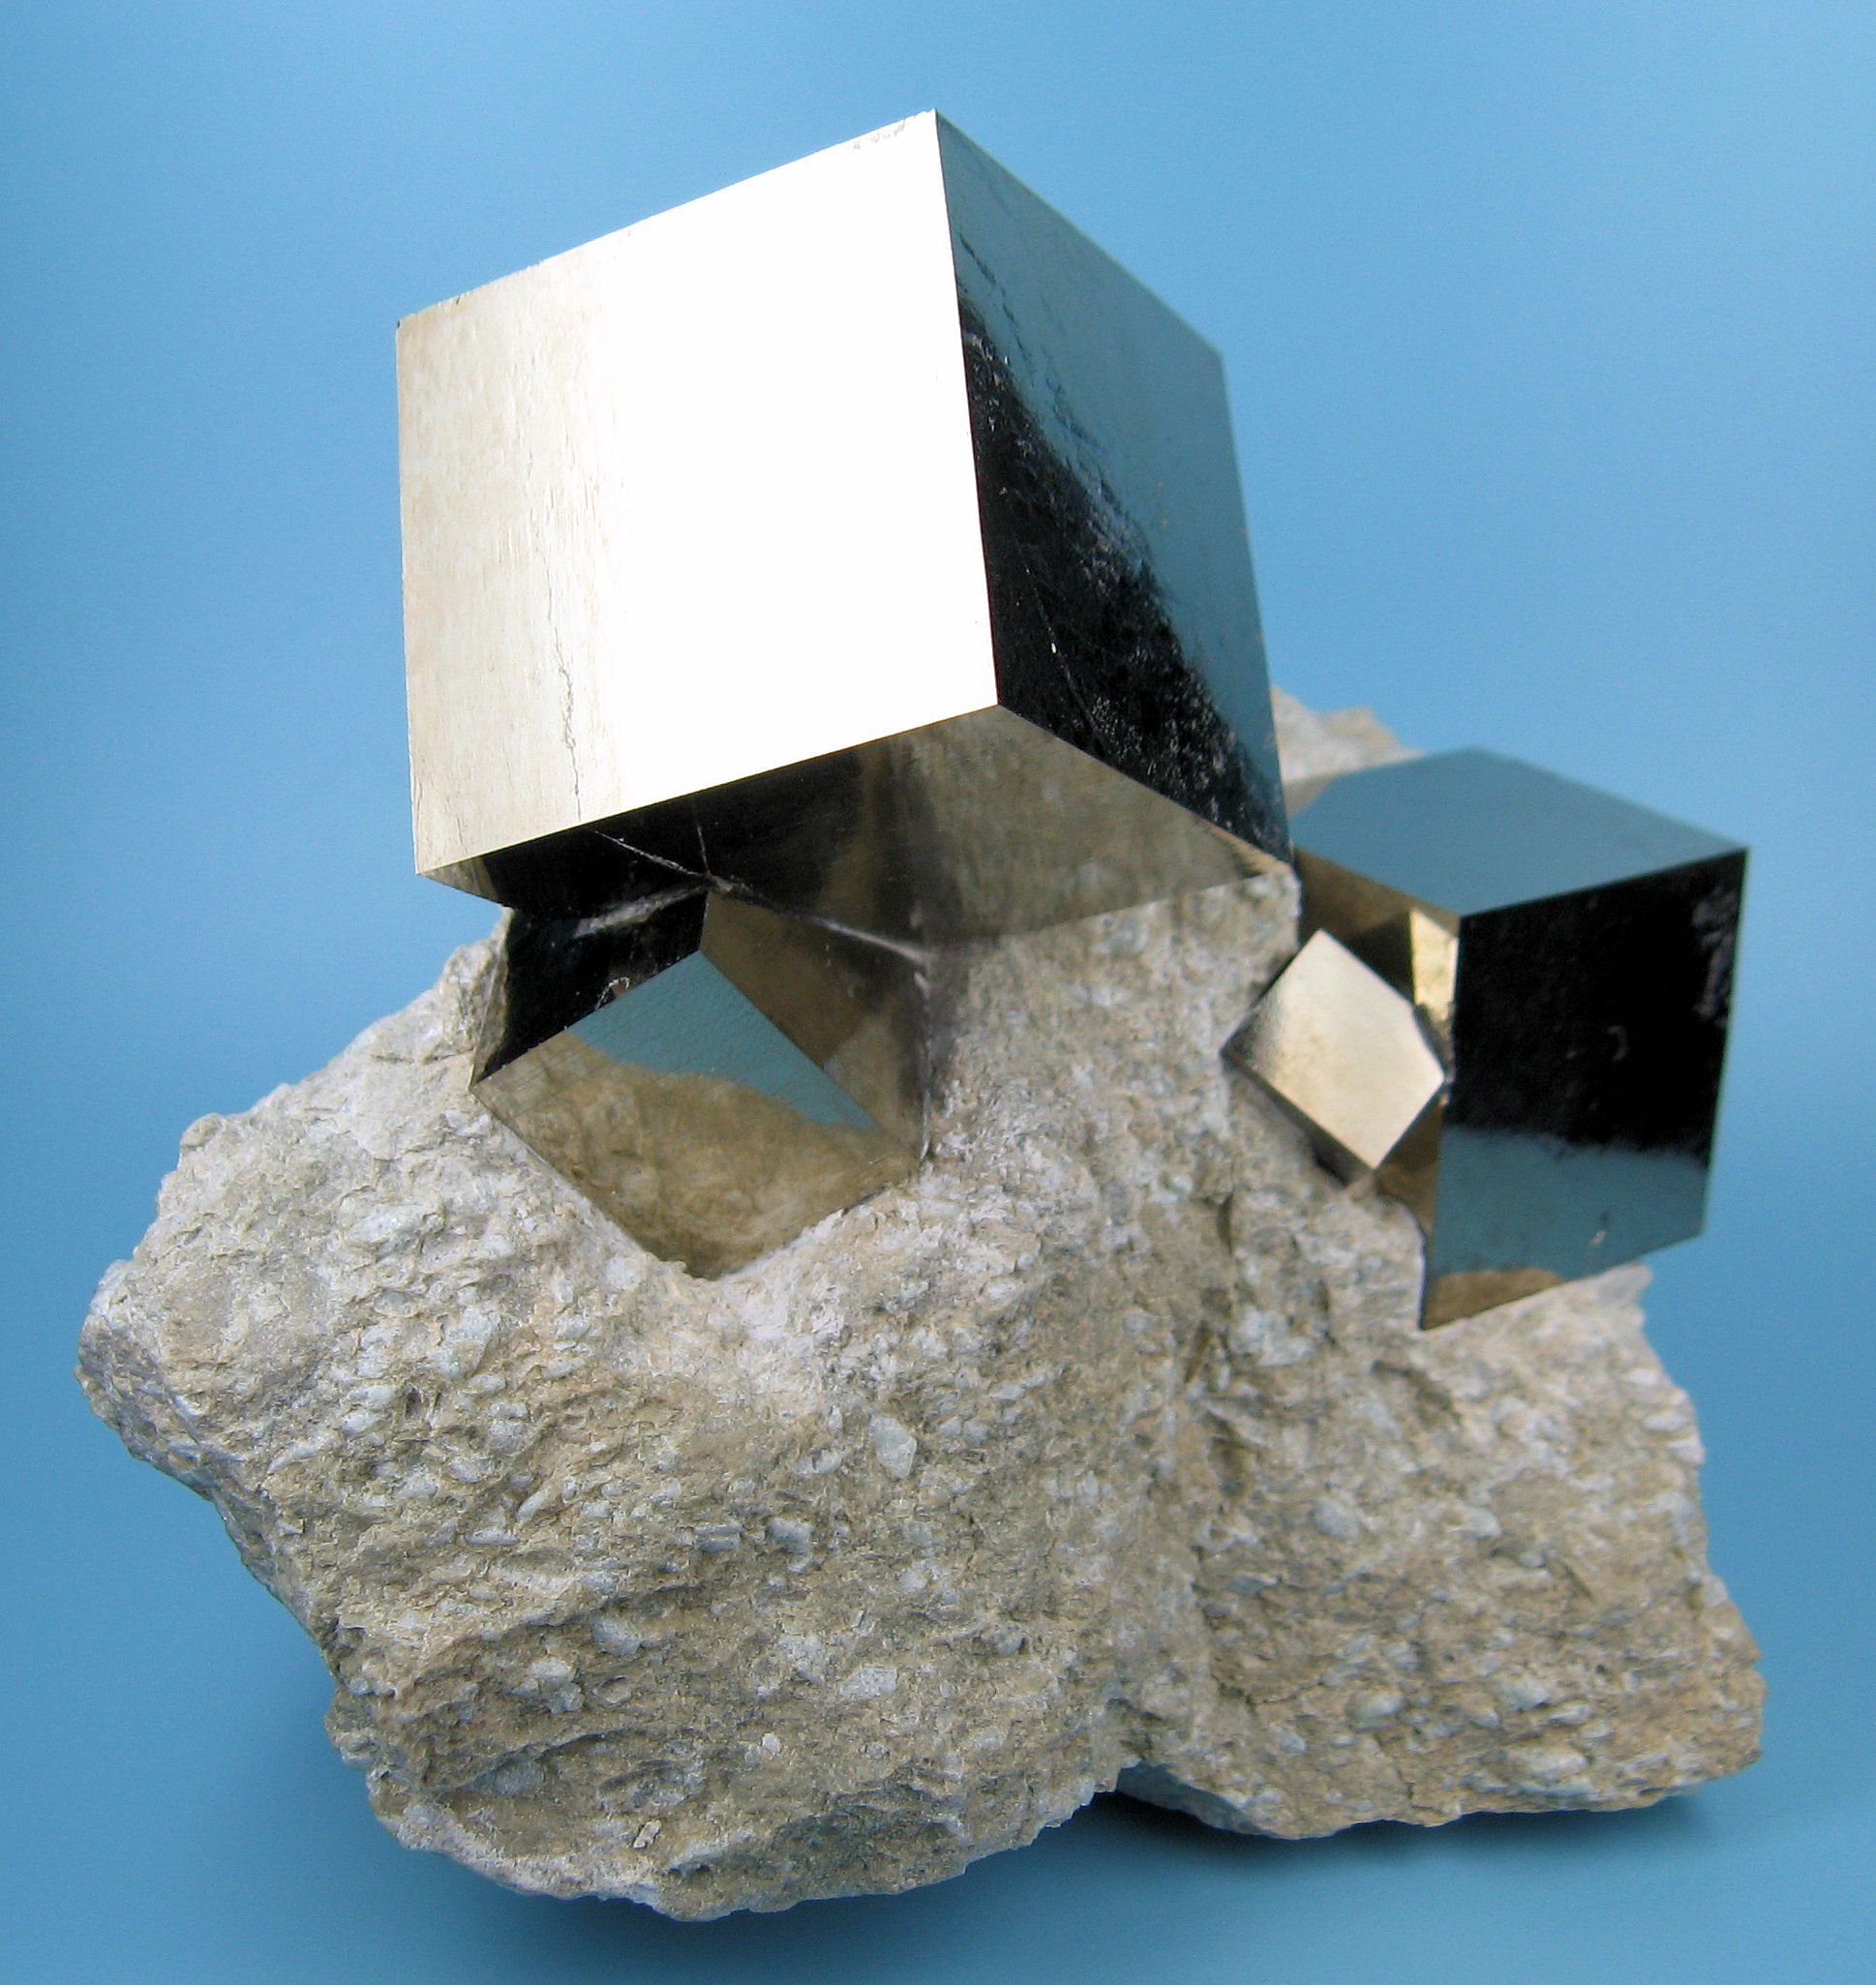 Wonderful pyrite from Navajún Spain